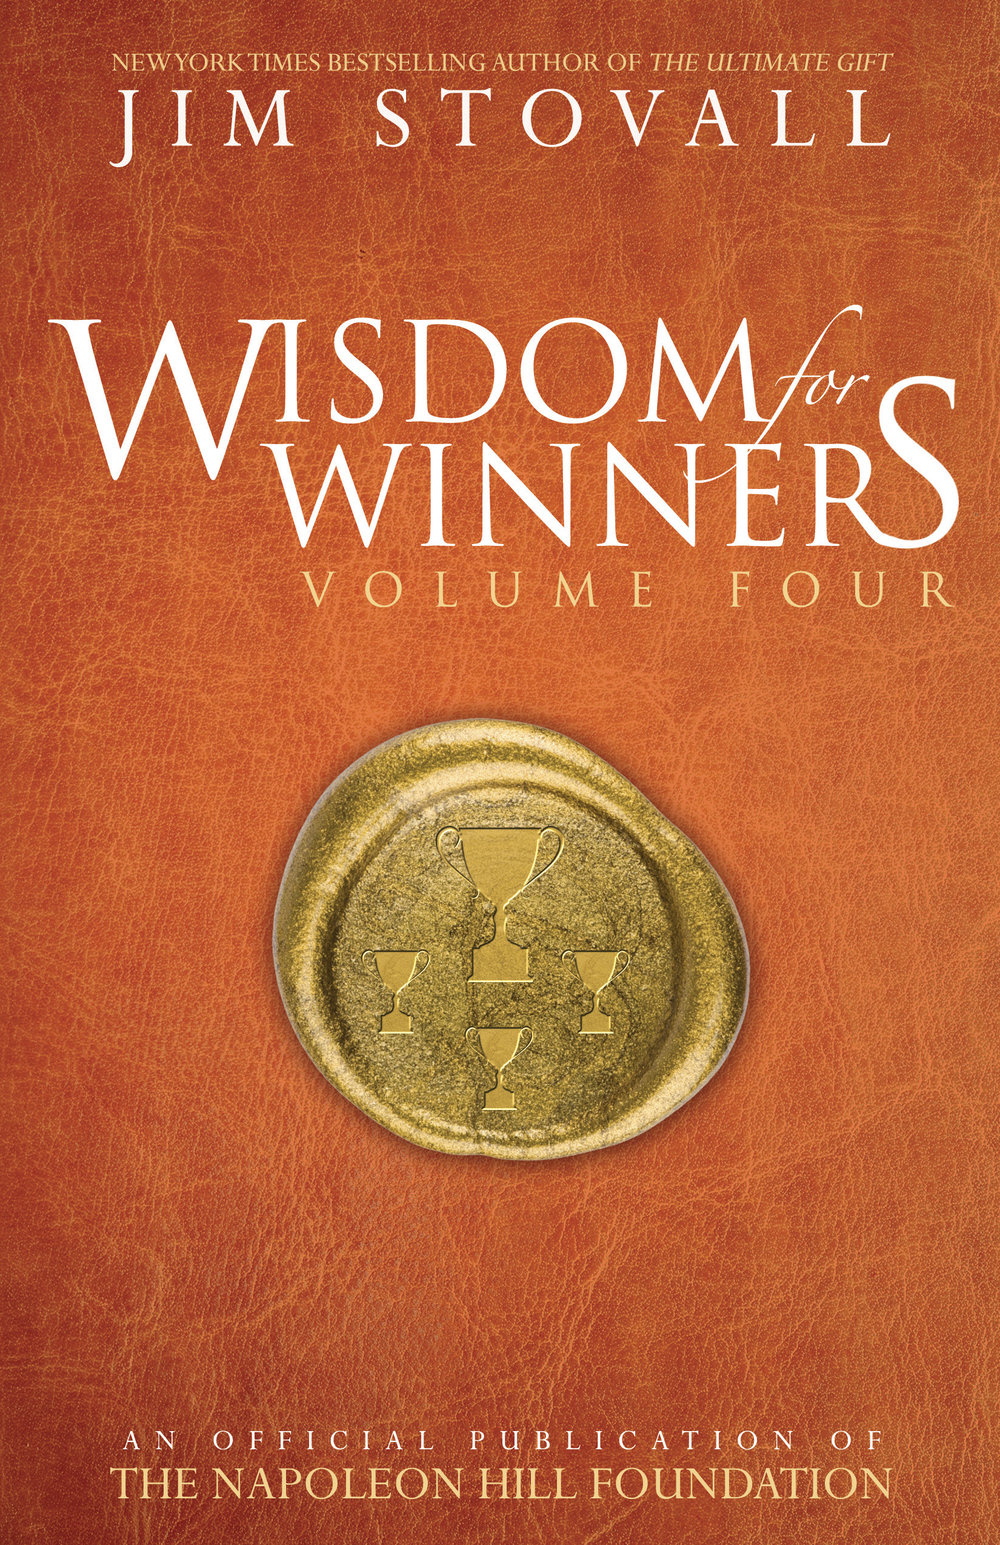 Wisdom for Winners Volume Four - By Jim Stovall